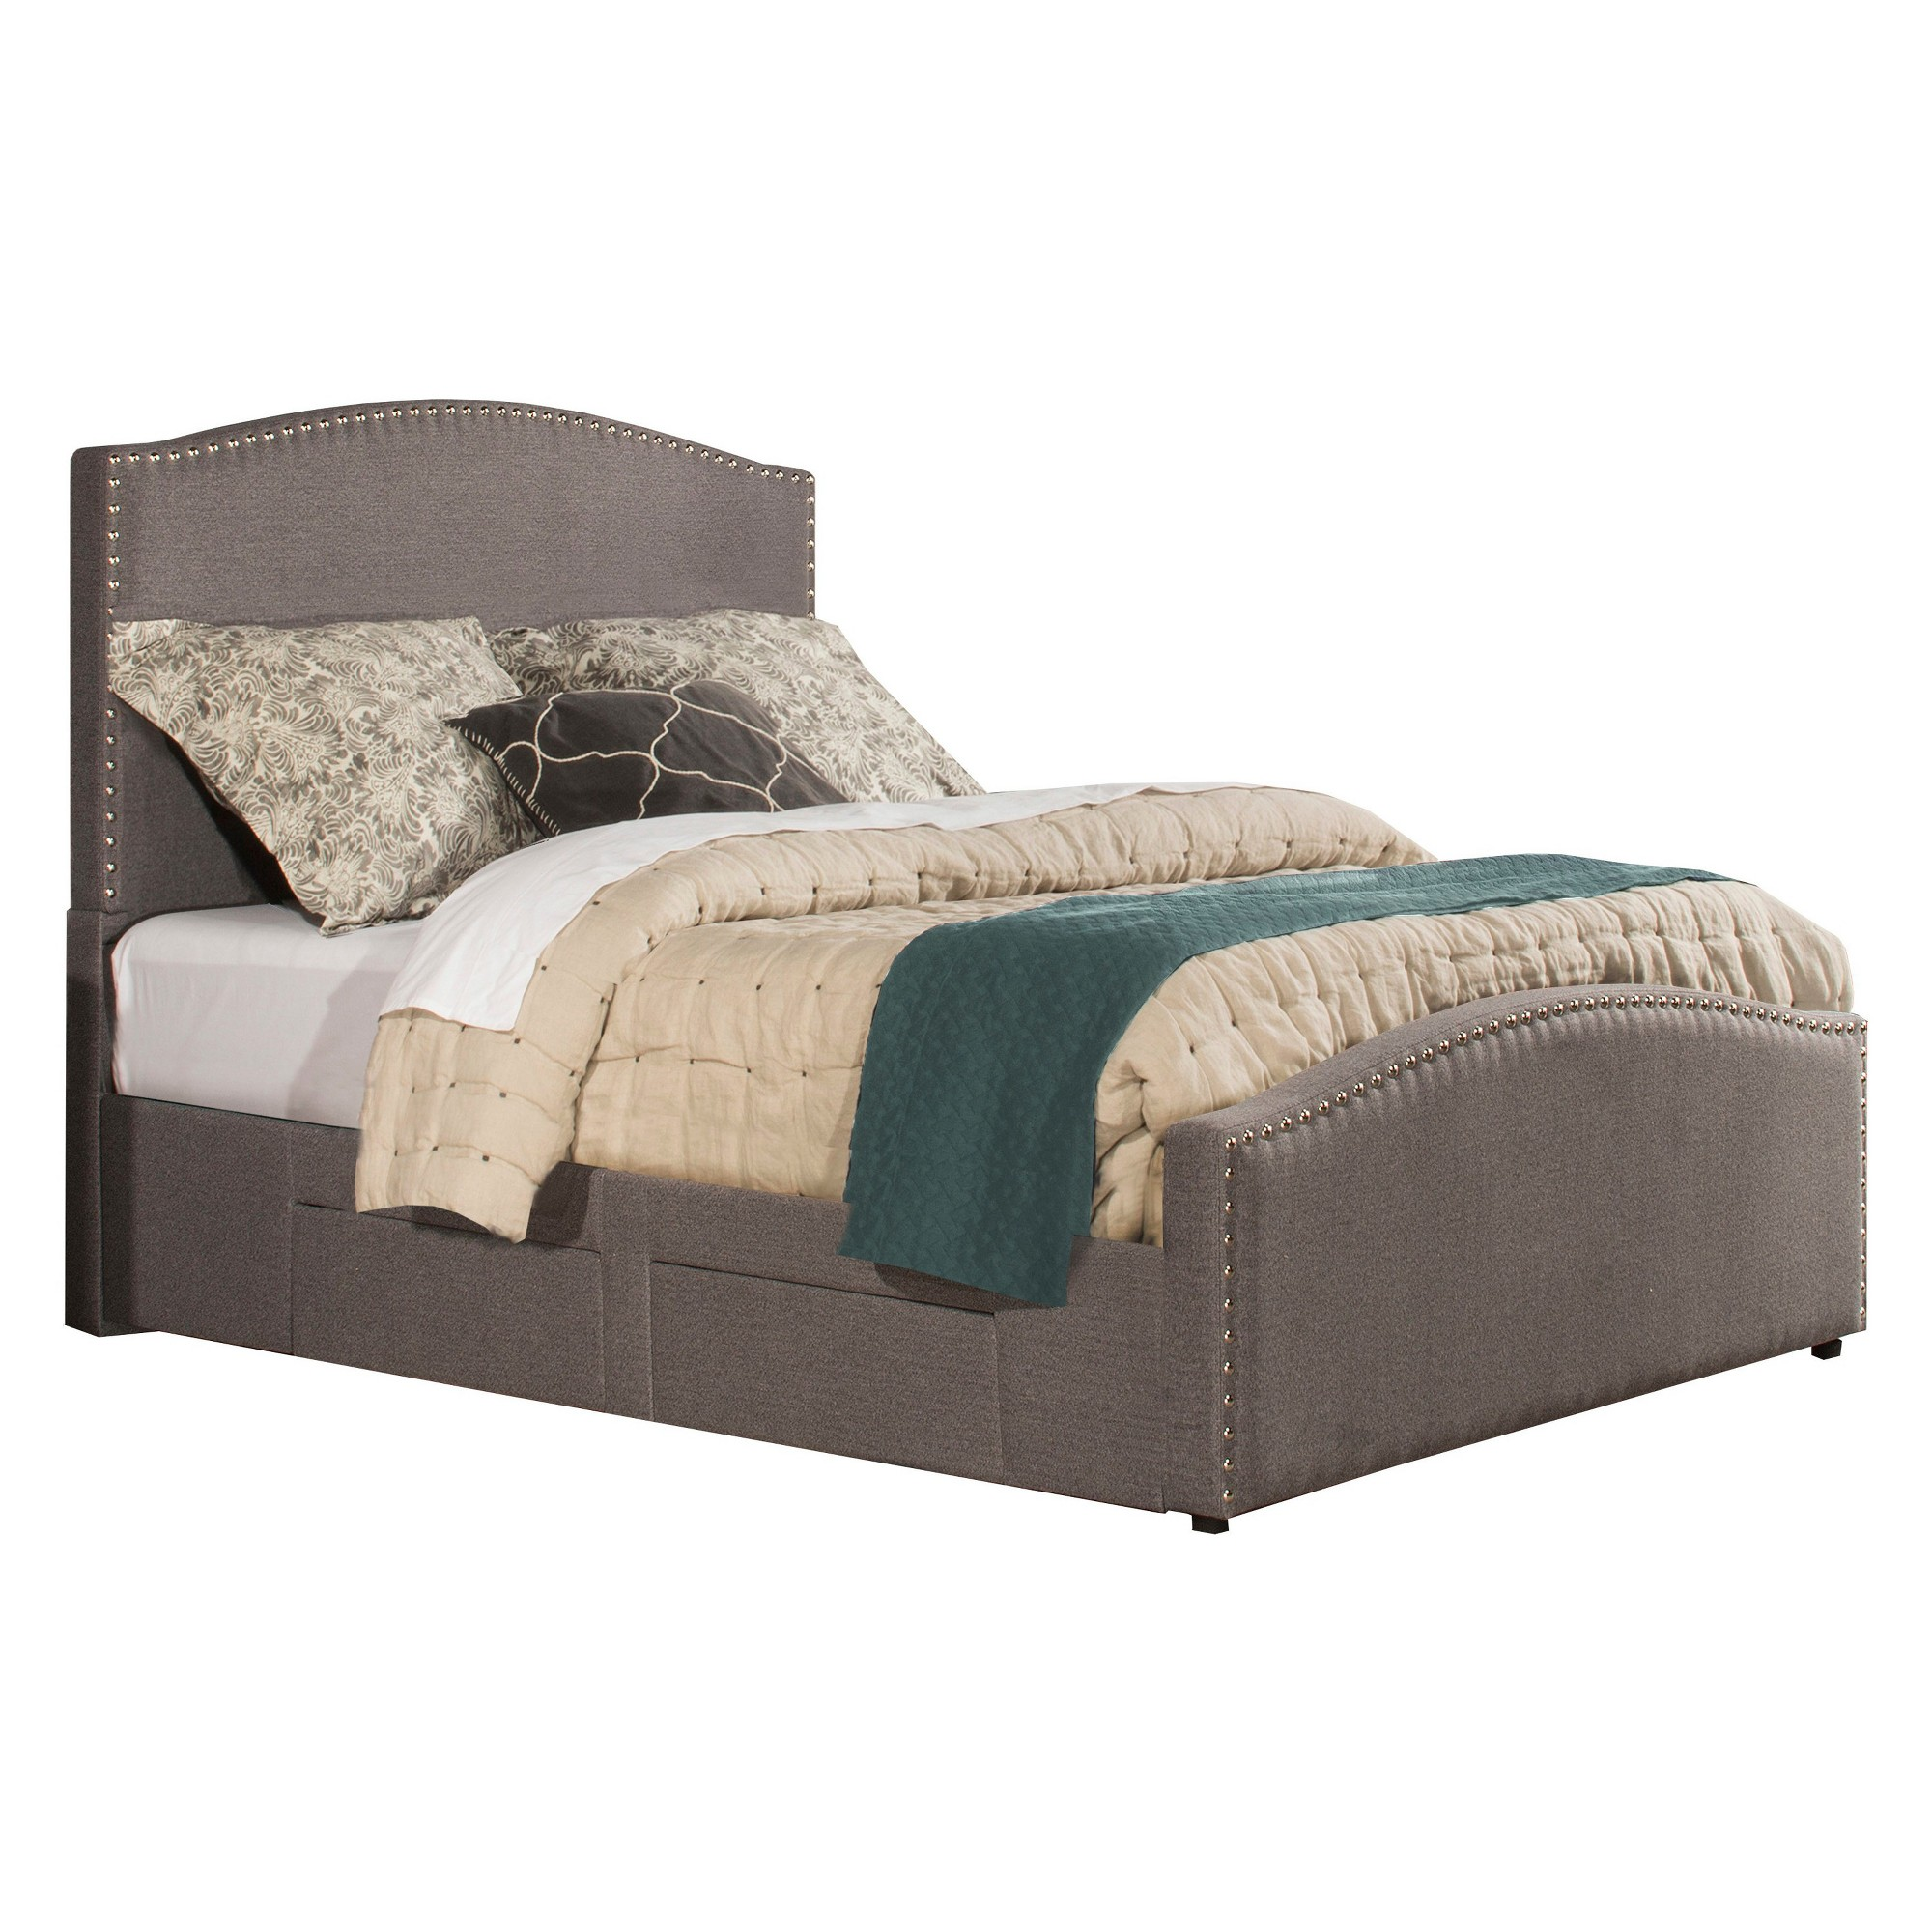 Kerstein Storage Bed Set With Rails   Cal King   Orly Gray Fabric    Hillsdale Furniture